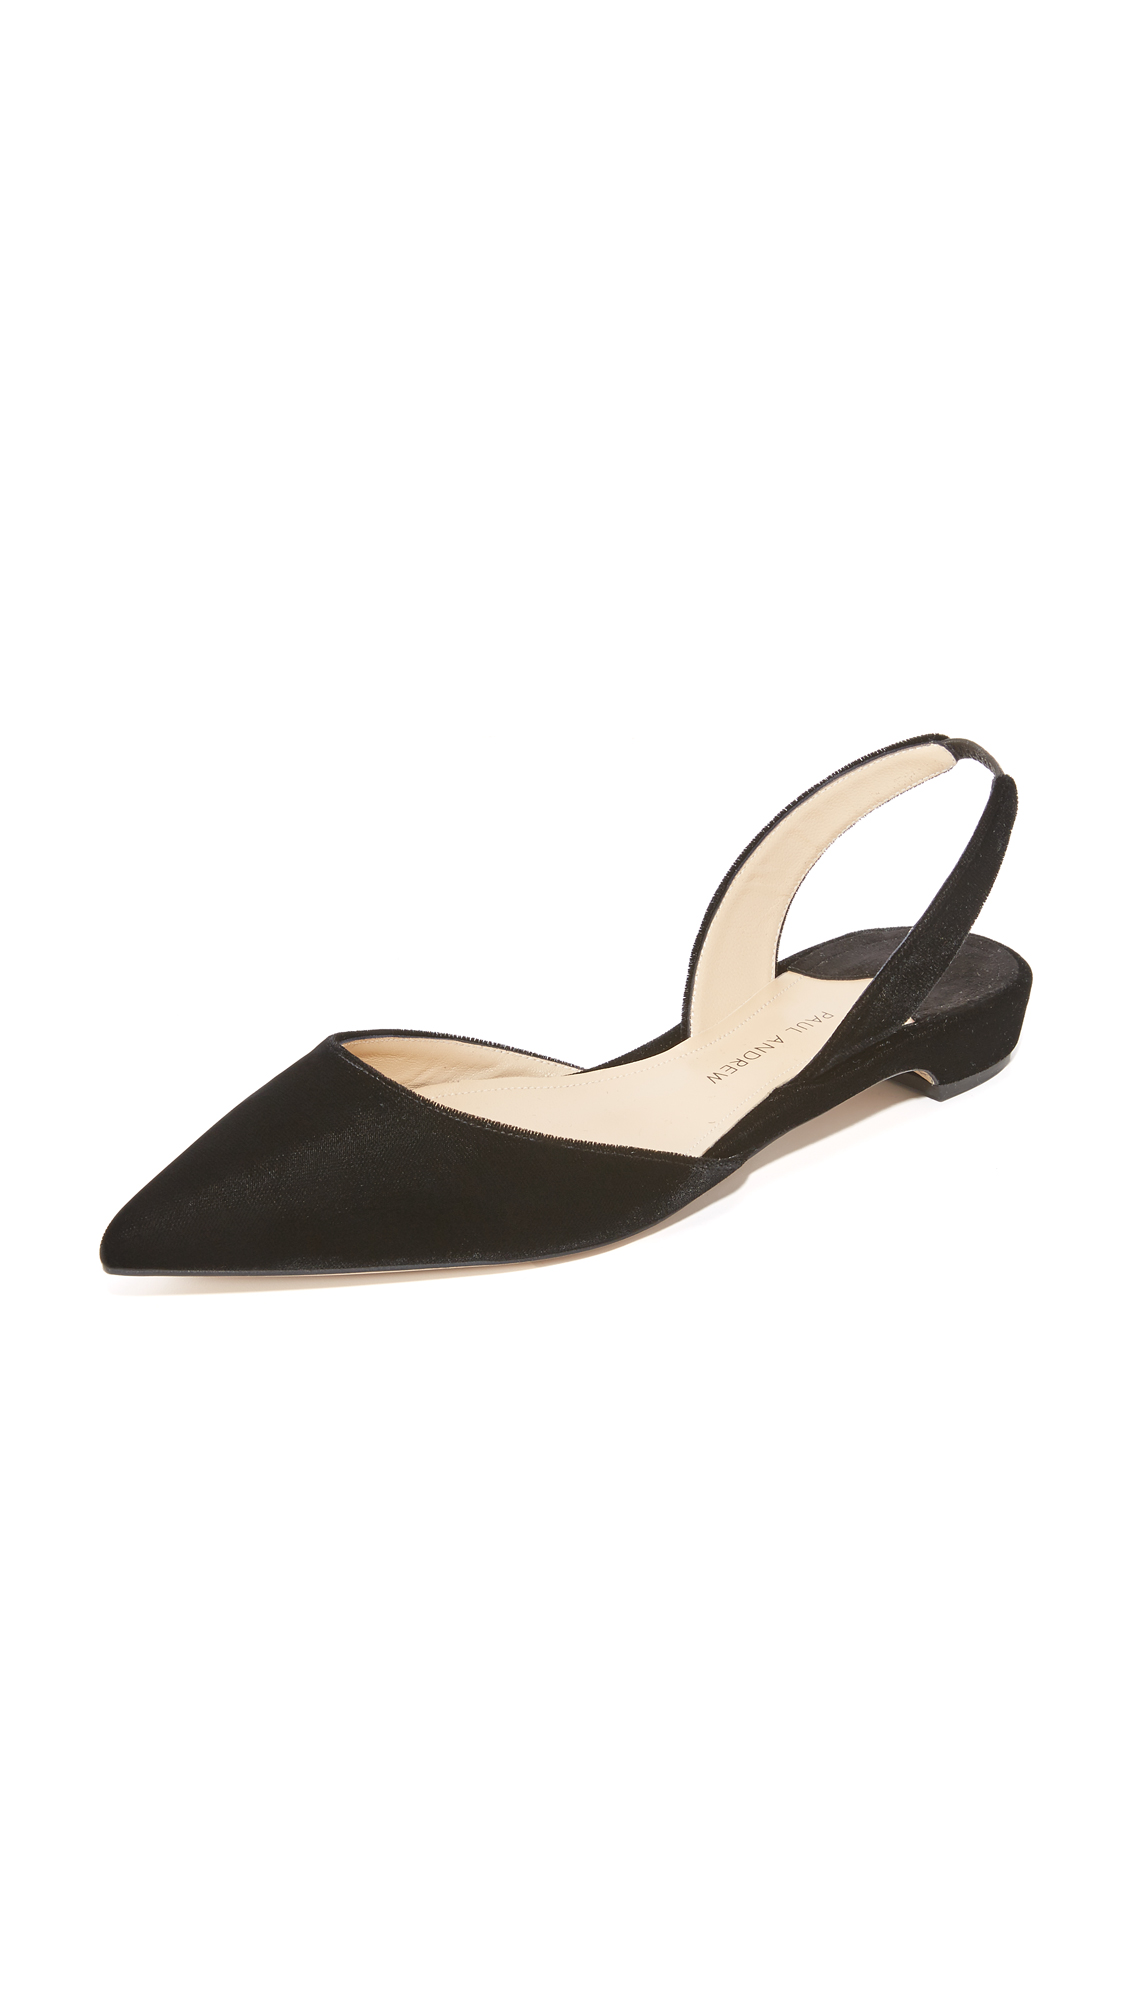 Plush velvet Paul Andrew pumps in a pointed toe profile. Elastic inset at slingback strap. Low, covered heel and leather sole. Fabric: Velvet. Made in Italy. Size & Fit. Available sizes: 35,35.5,36,36.5,37,37.5,38,38.5,39,39.5,40